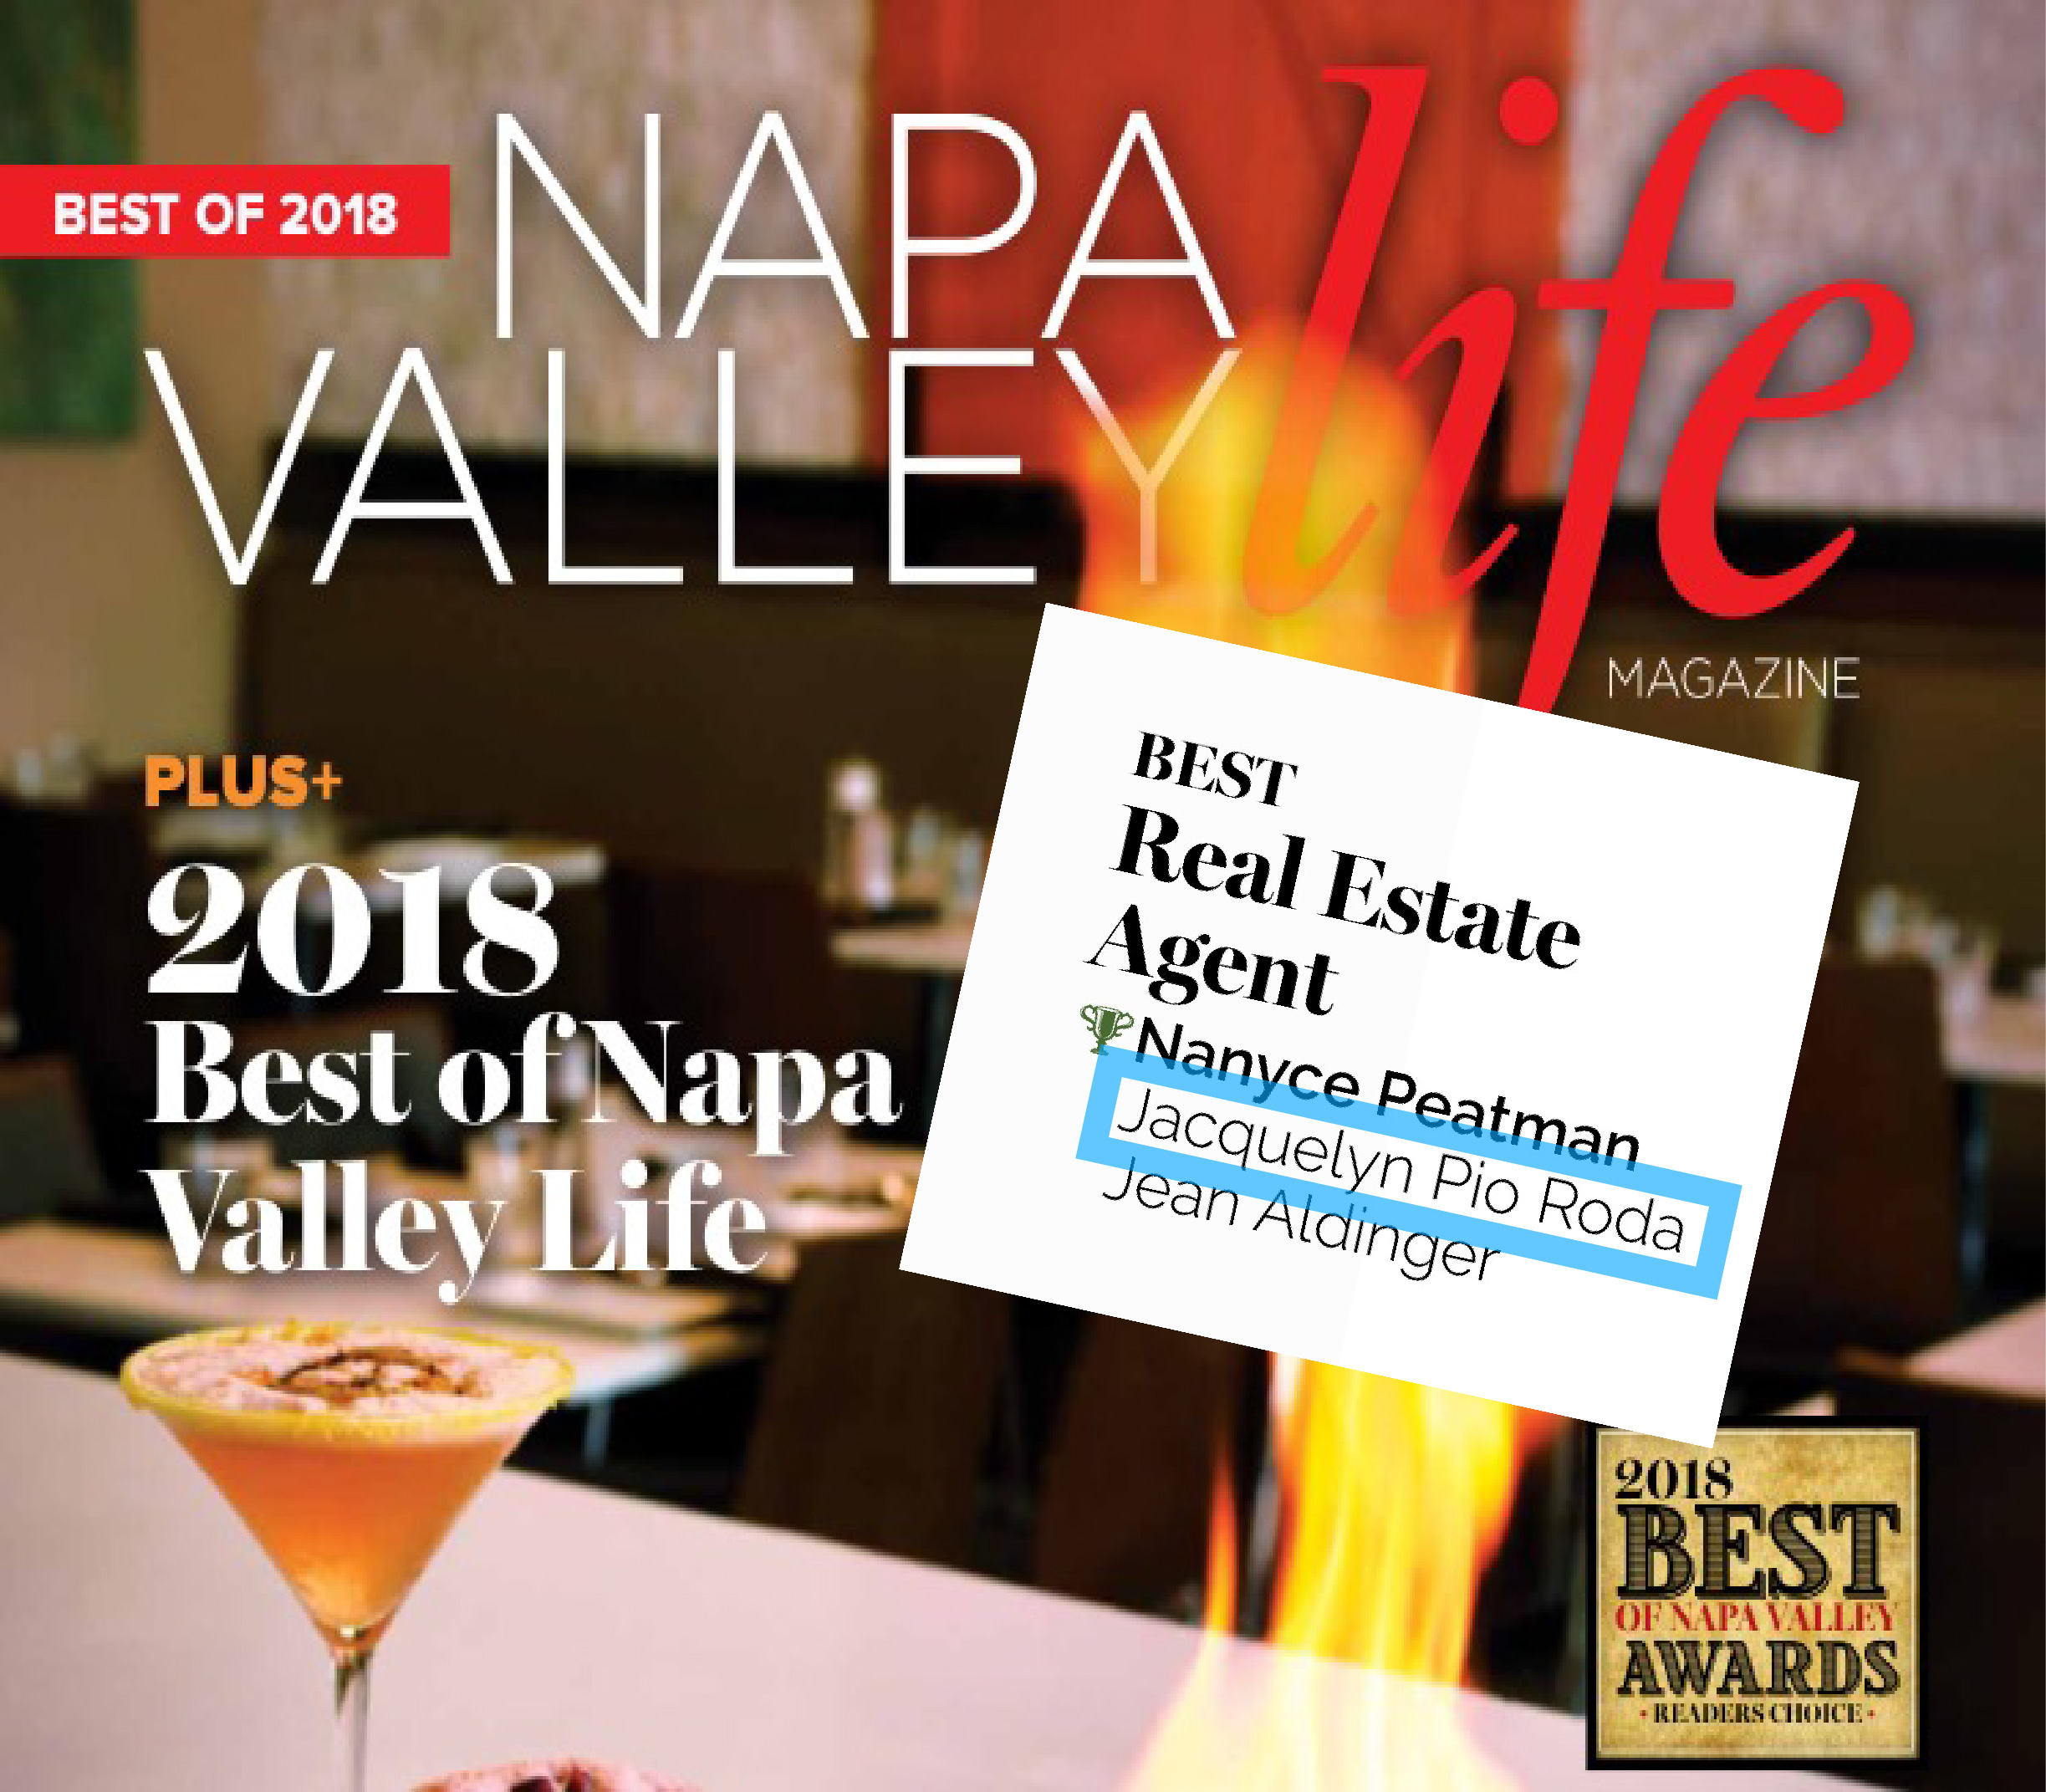 Jacquelyn A. Pio Roda was voted by Readers of Napa Valley Life Magazine as the Best Real Estate Agent in 2018.